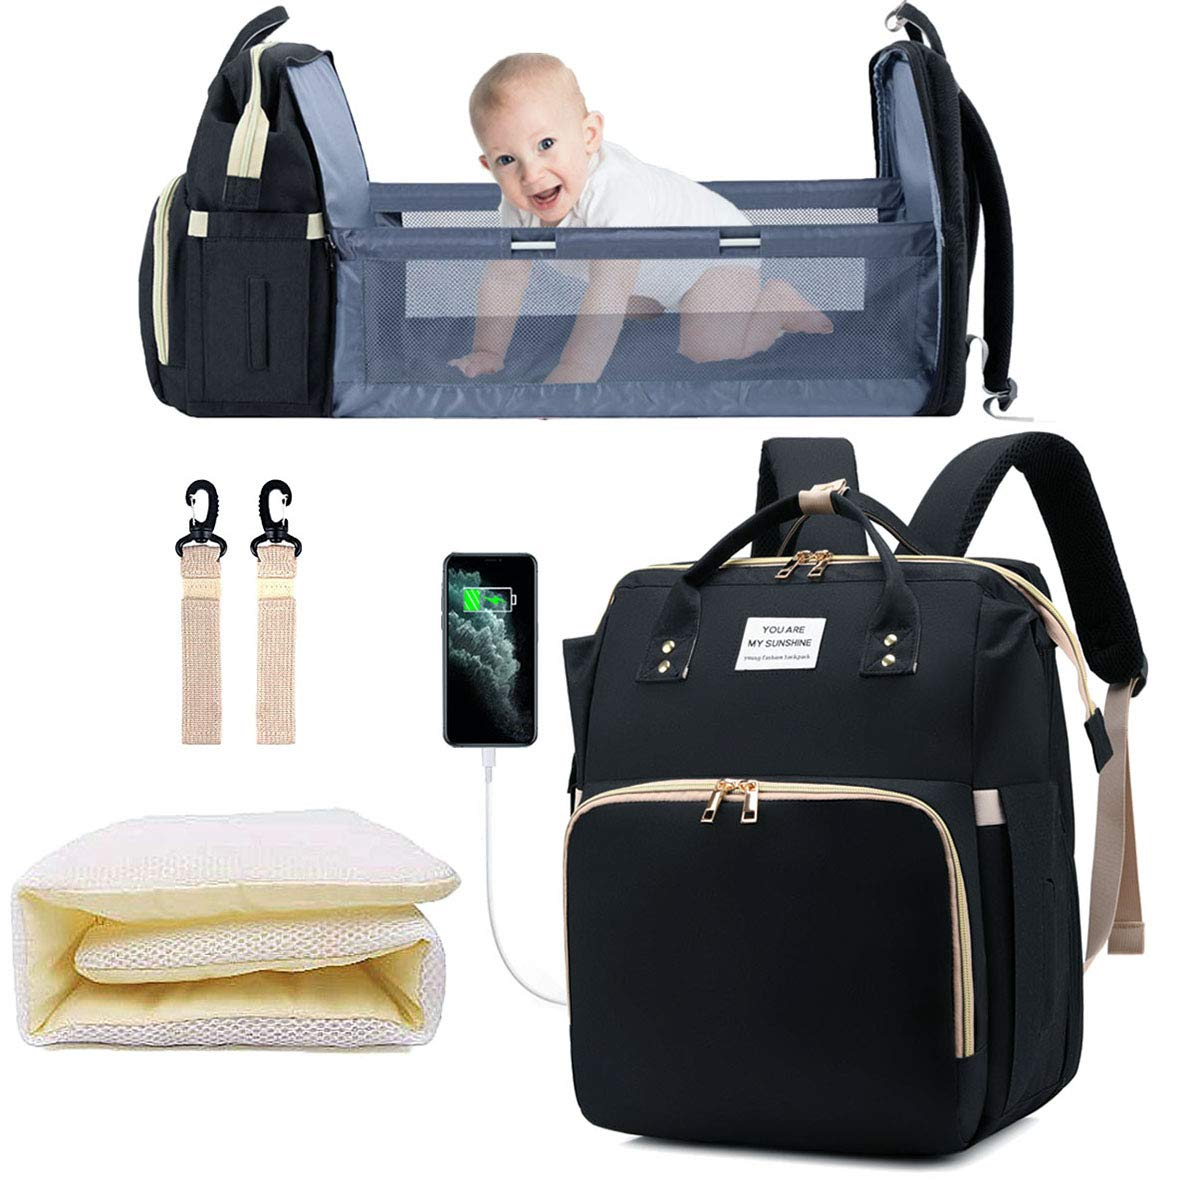 Diaper Bag with Changing Station, Baby Bag, Diaper Bag Backpack, Baby Bag with Built-in USB Charging Port and Stroller Straps Large Capacity Waterproof (Black)